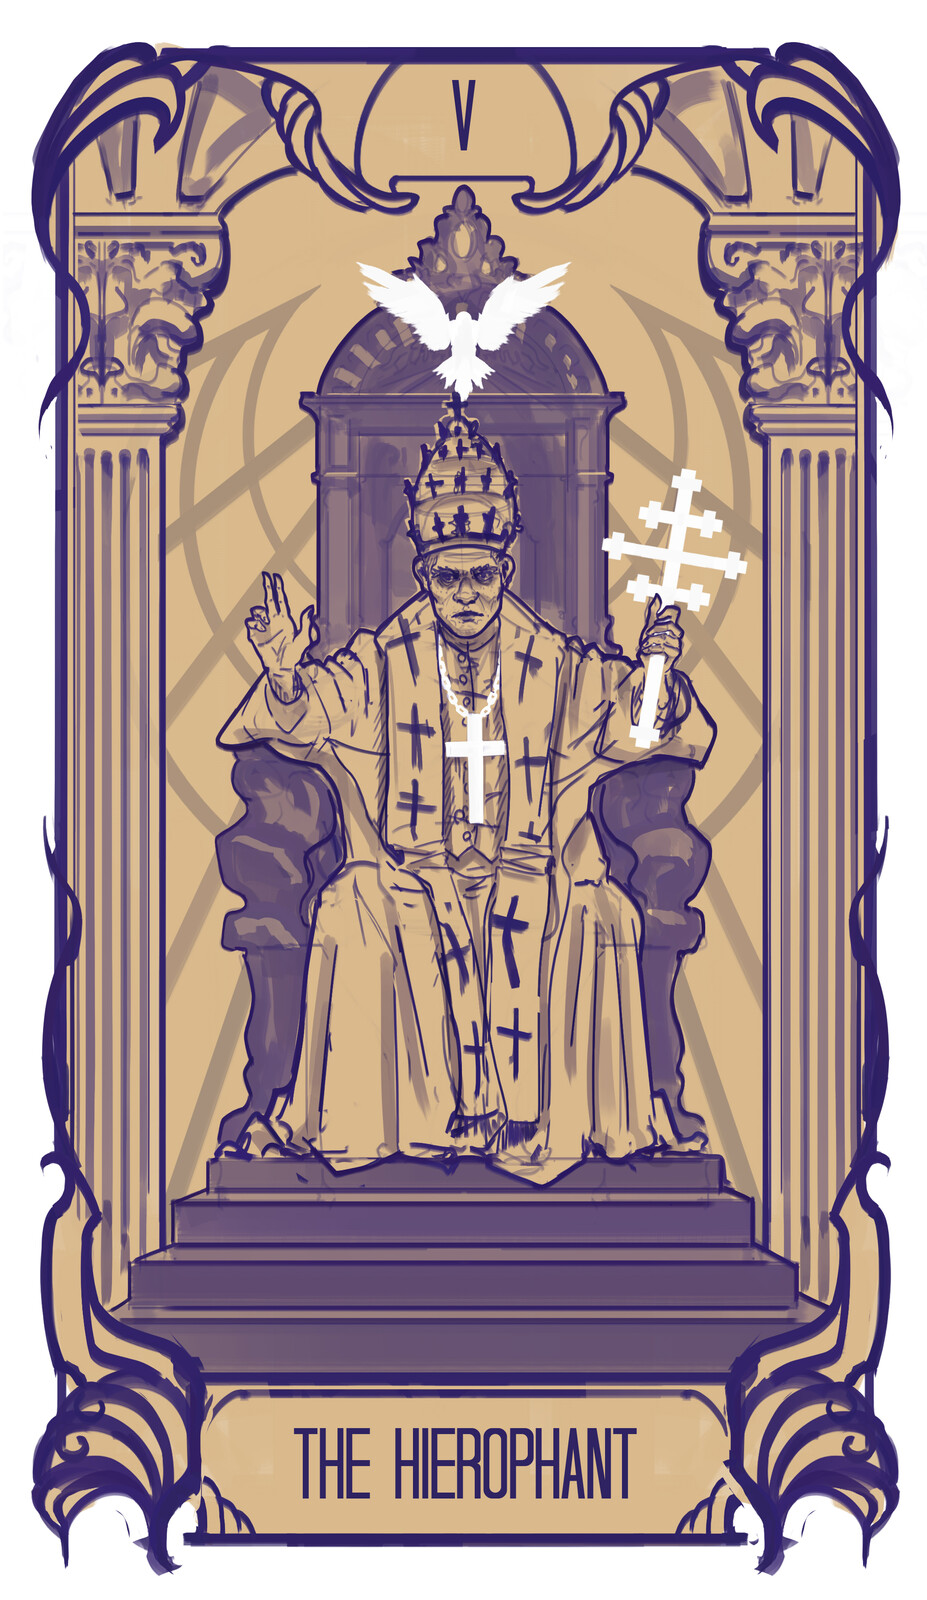 5. The Hierophant